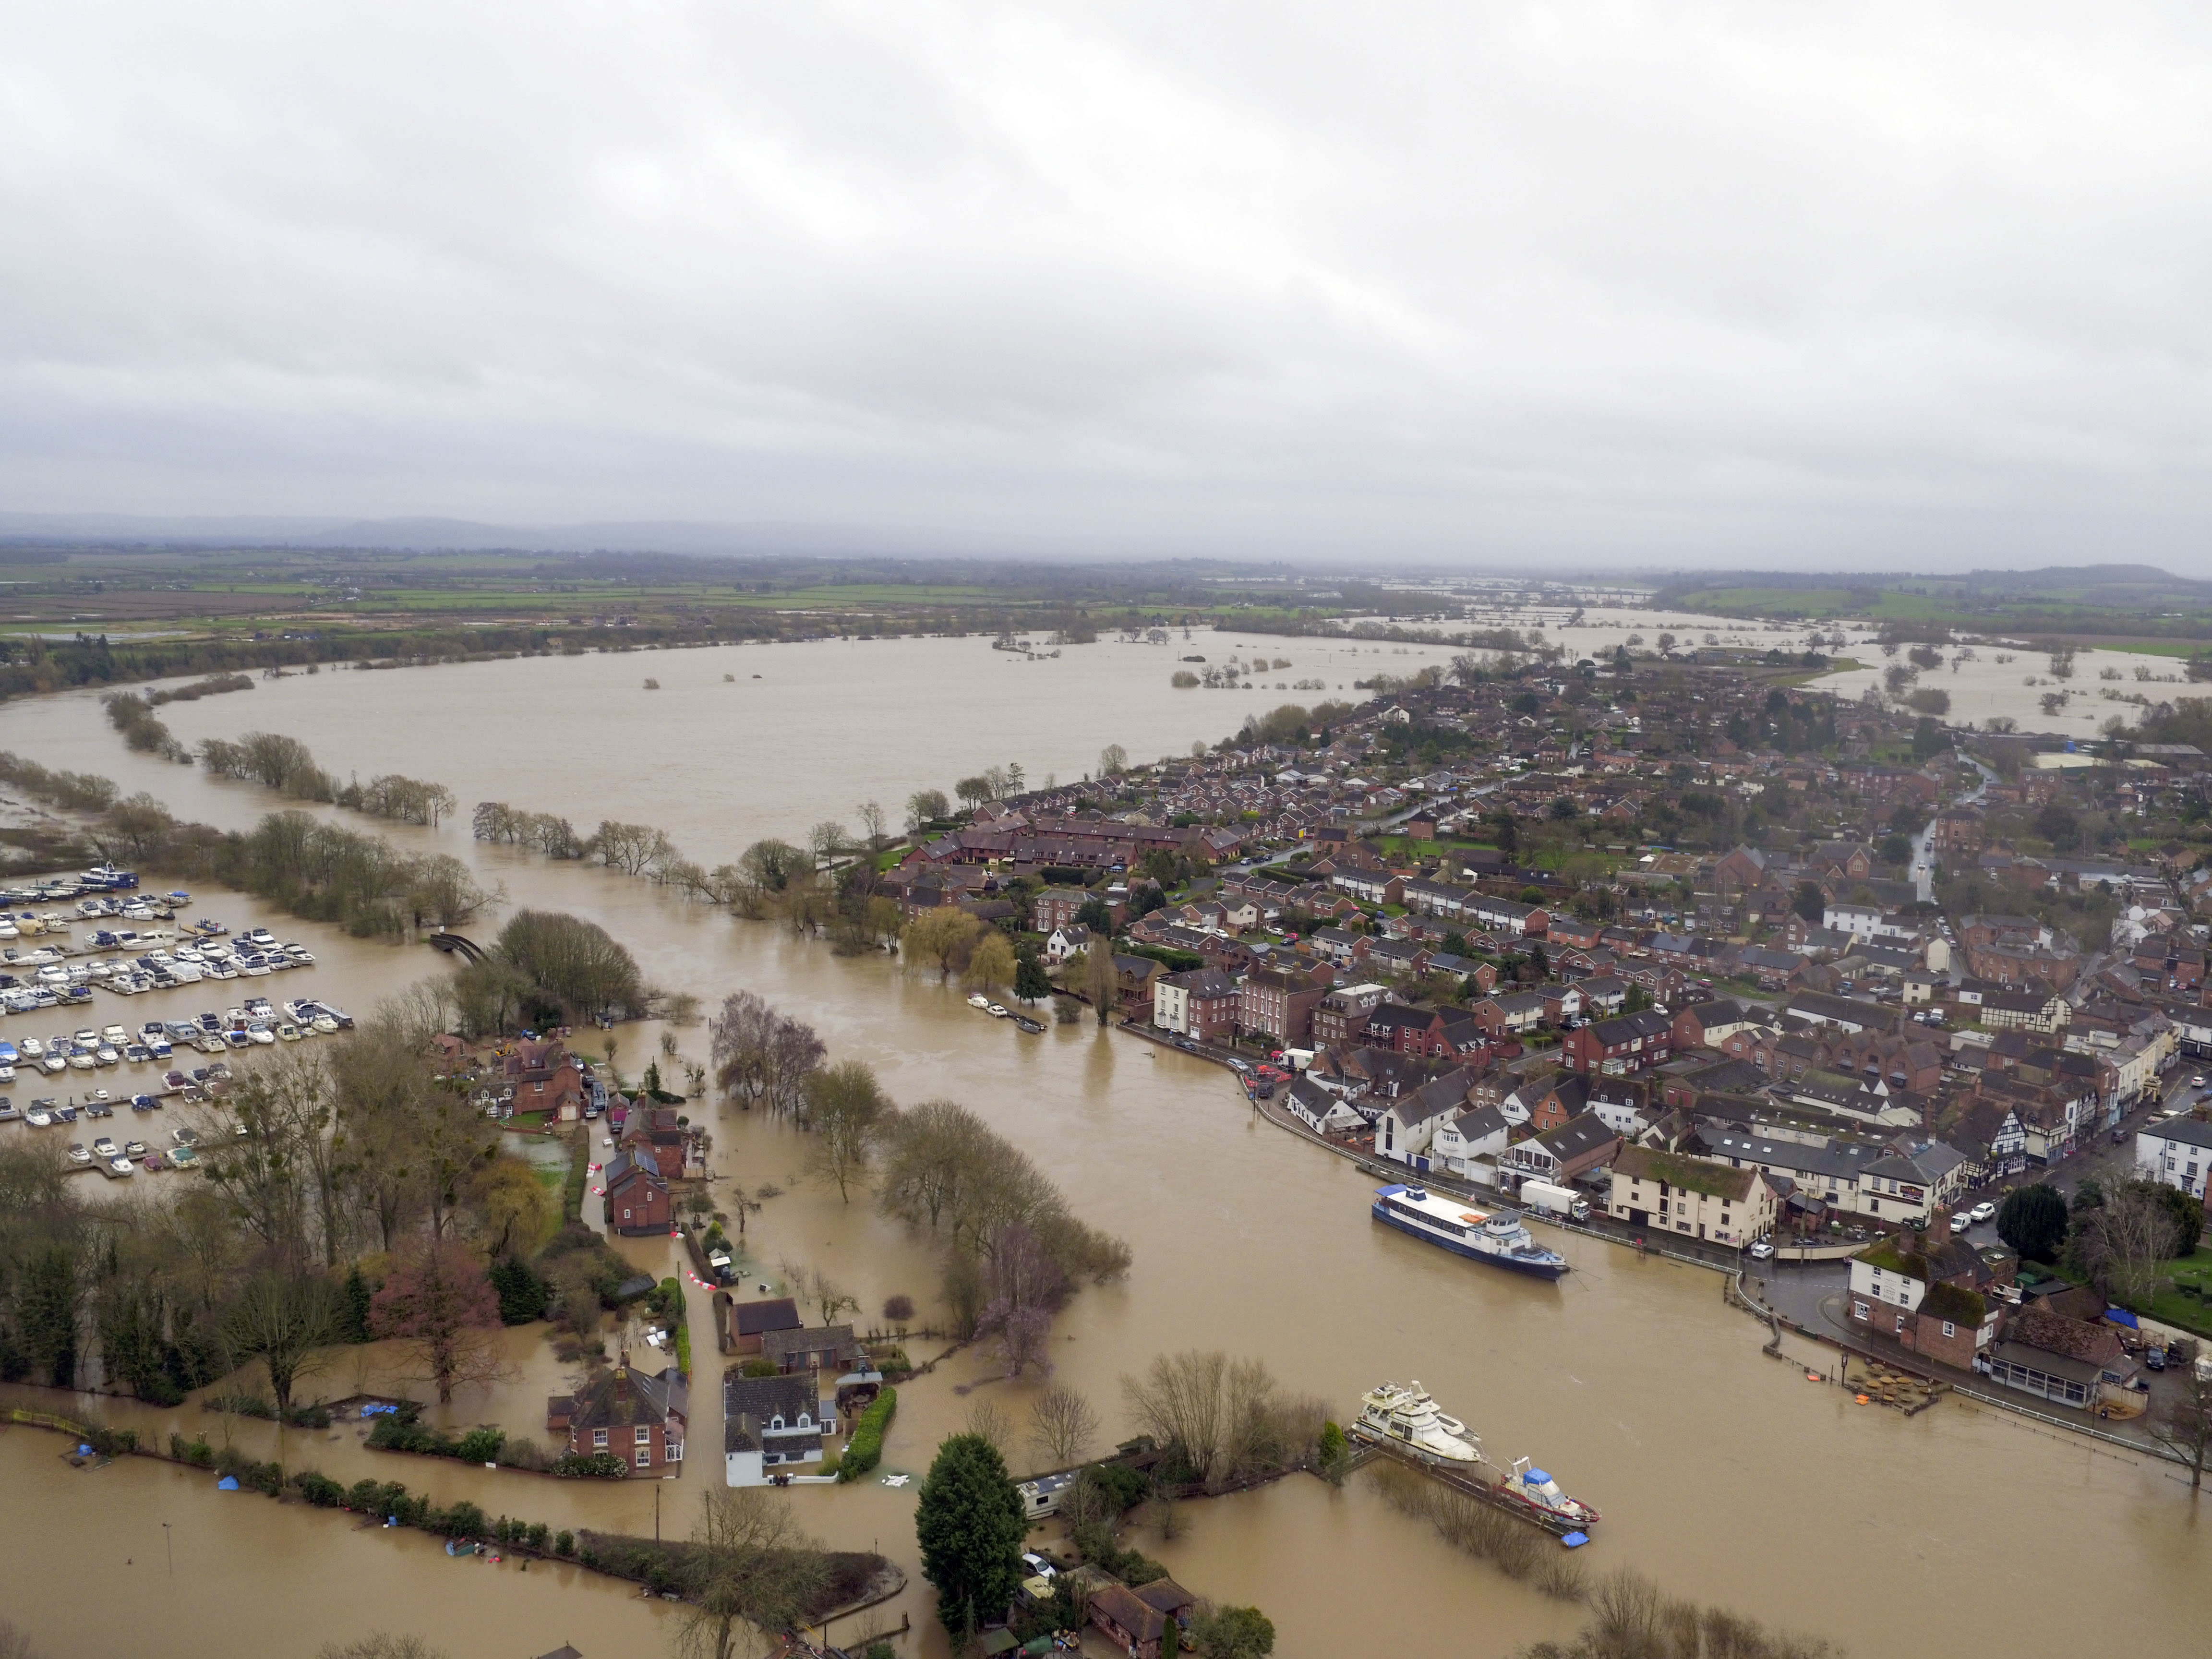 """Flood water continues to surround Upton-upon-Severn, Worcestershire, in the aftermath of Storm Dennis. PA Photo. Picture date: Thursday February 20, 2020. Those already battling with the aftermath of several days worth of rain have been told to expect even more, with pockets of North Wales, northern England and Scotland among those in line for further deluges. The Environment Agency (EA) warned there is a """"heightened flood risk"""" across the Midlands, while there are six severe flood warnings - meaning a danger to life - in place around the Rivers Lugg, Severn and Wye. The lower Avon also remains especially high. See PA story WEATHER Storm. Photo credit should read: Steve Parsons/PA Wire"""